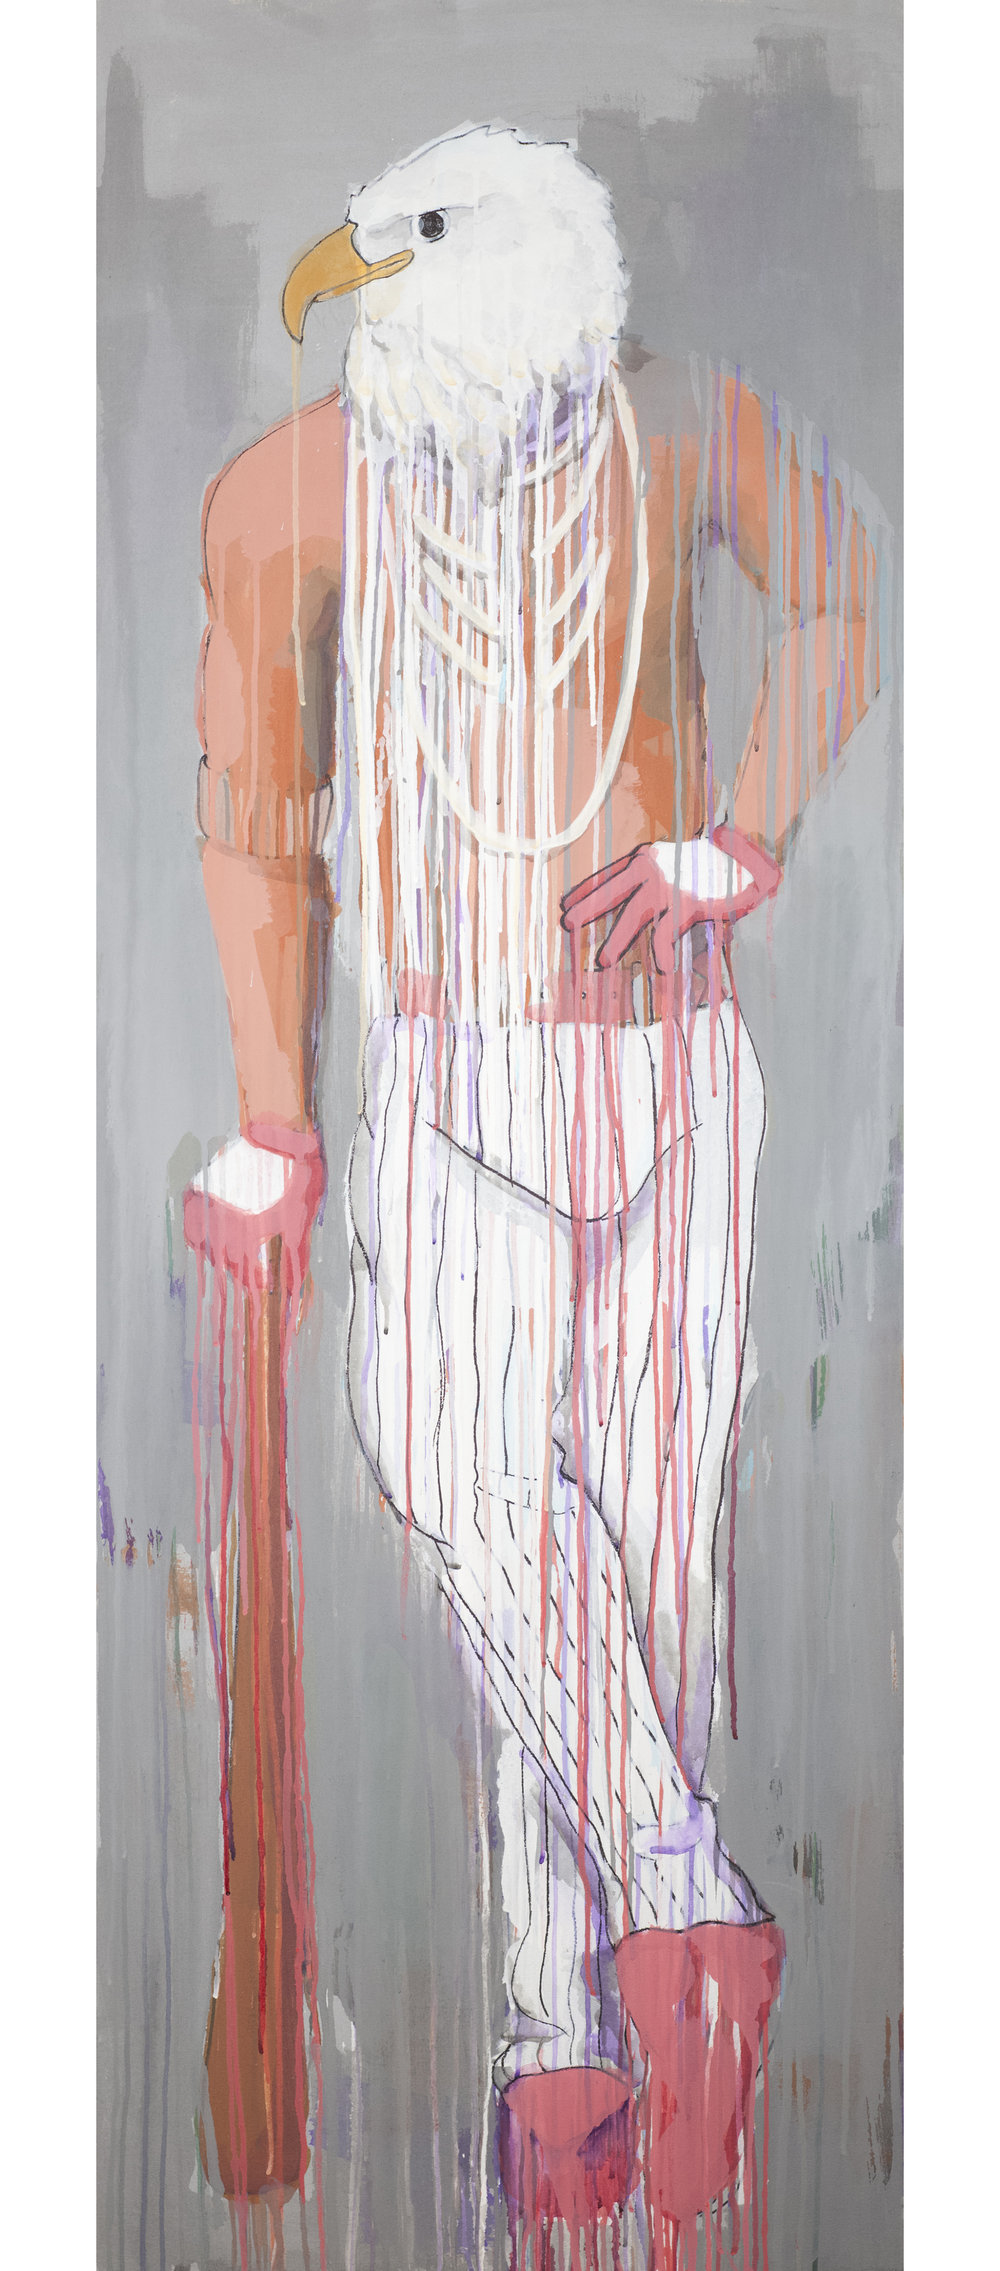 acrylic on canvas, 26in x 72in